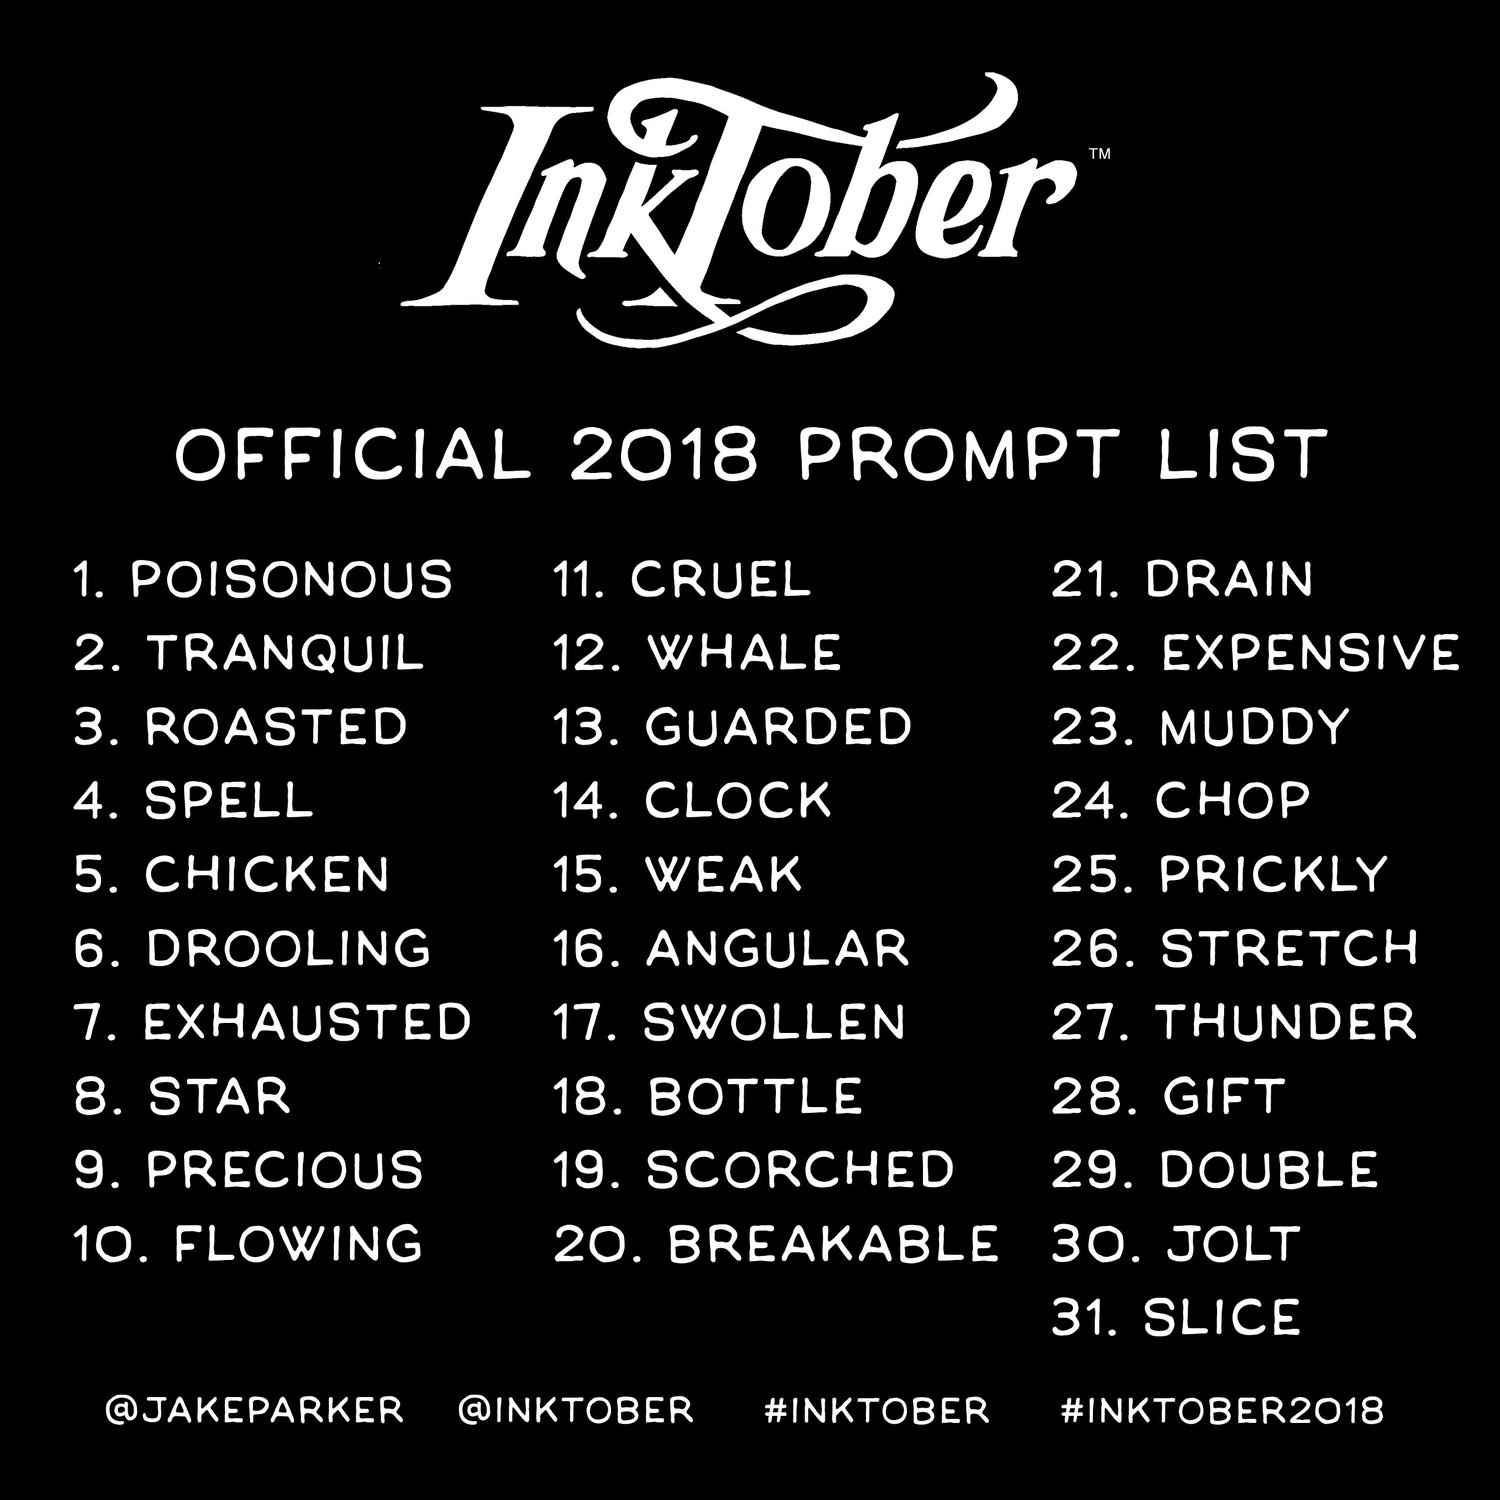 inktober prompt list 2018